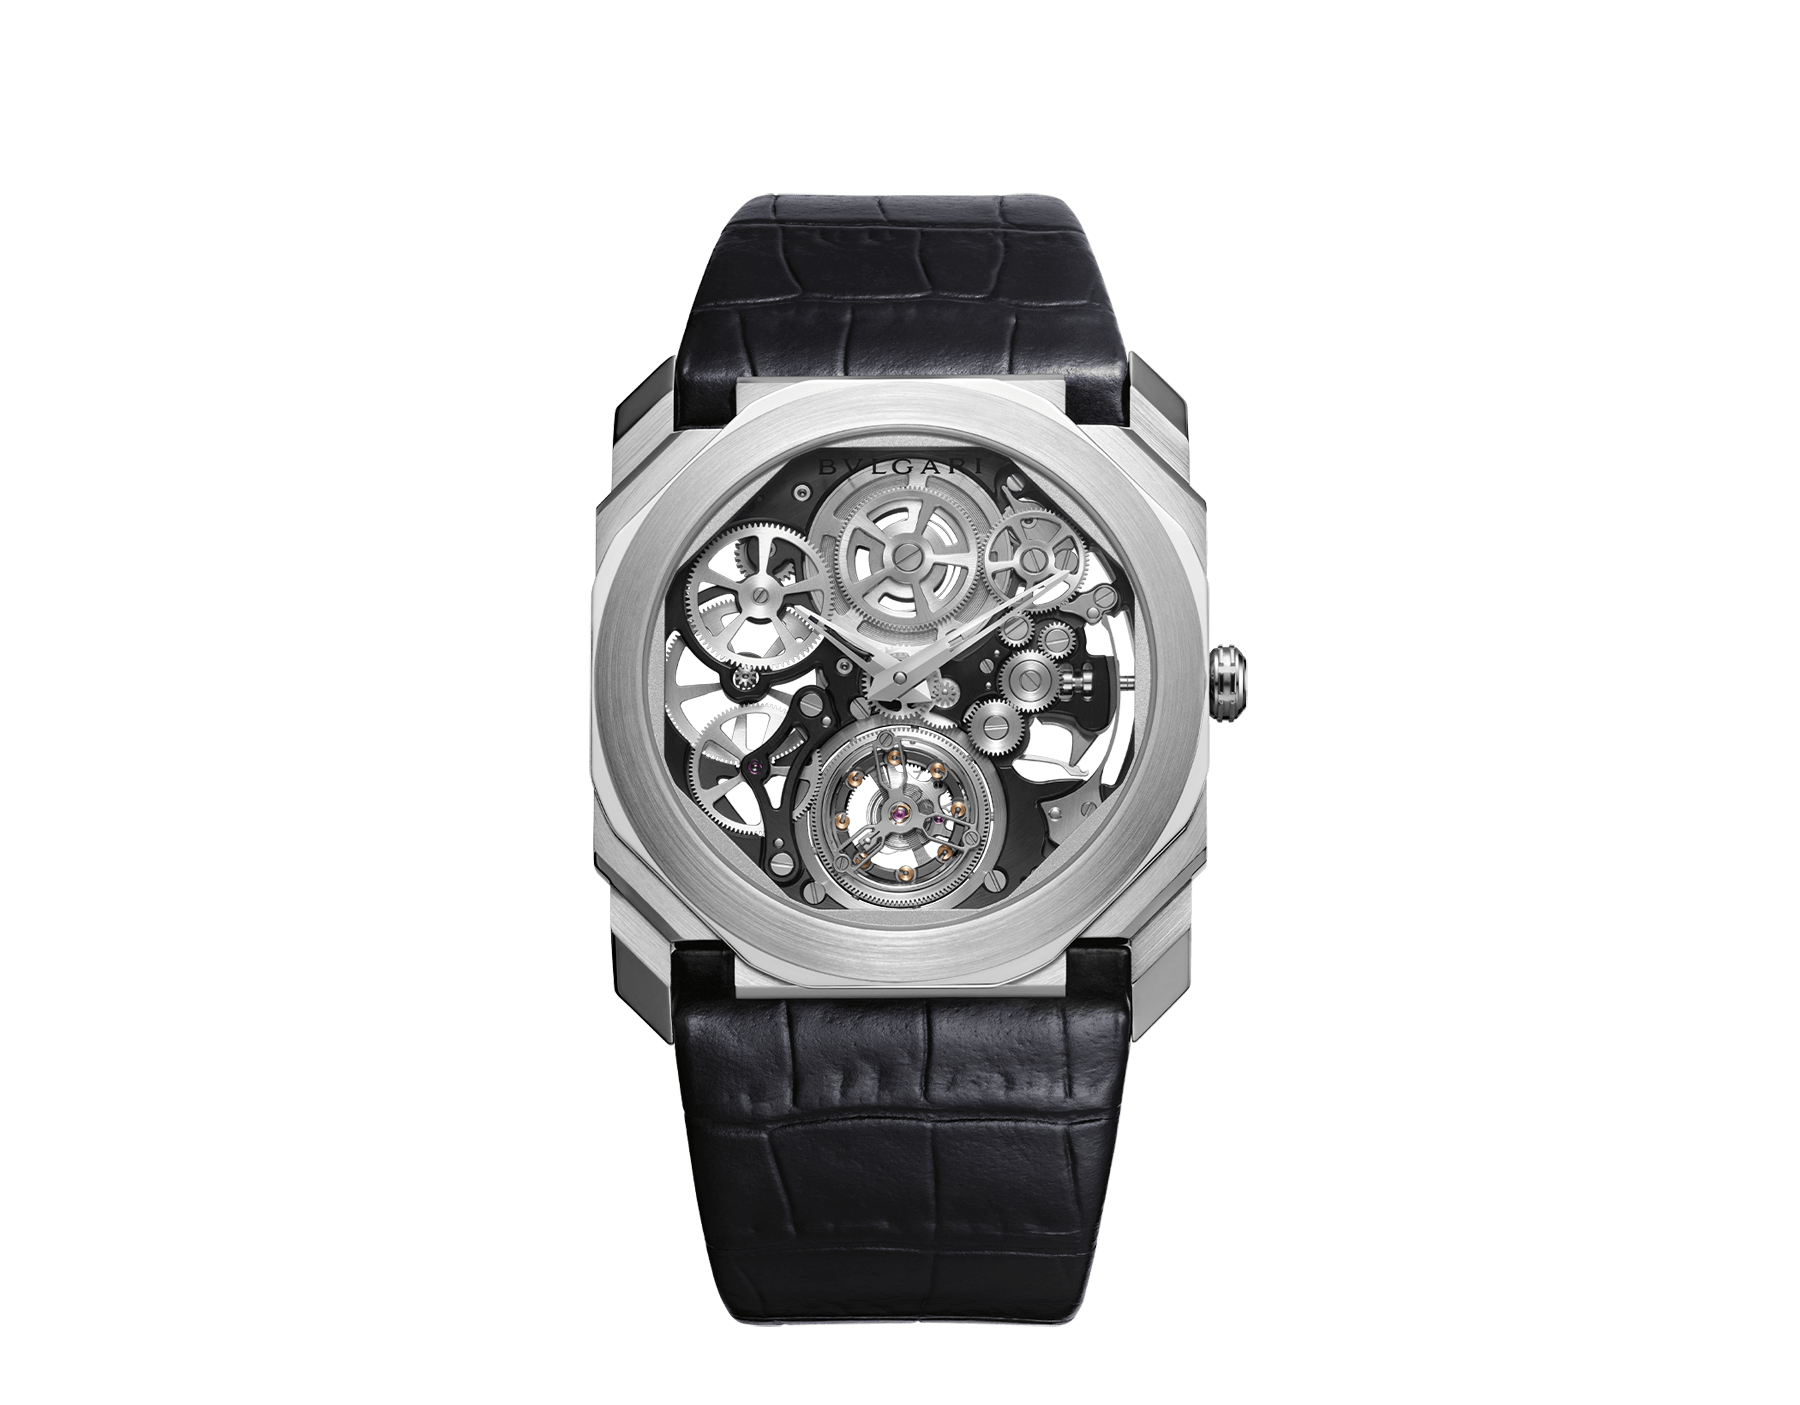 Octo Finissimo Tourbillon Squelette watch with ultra-thin mechanical skeleton movement, manual winding and ball-bearings system, platinum case, transparent dial and black alligator bracelet. 102719 image 1